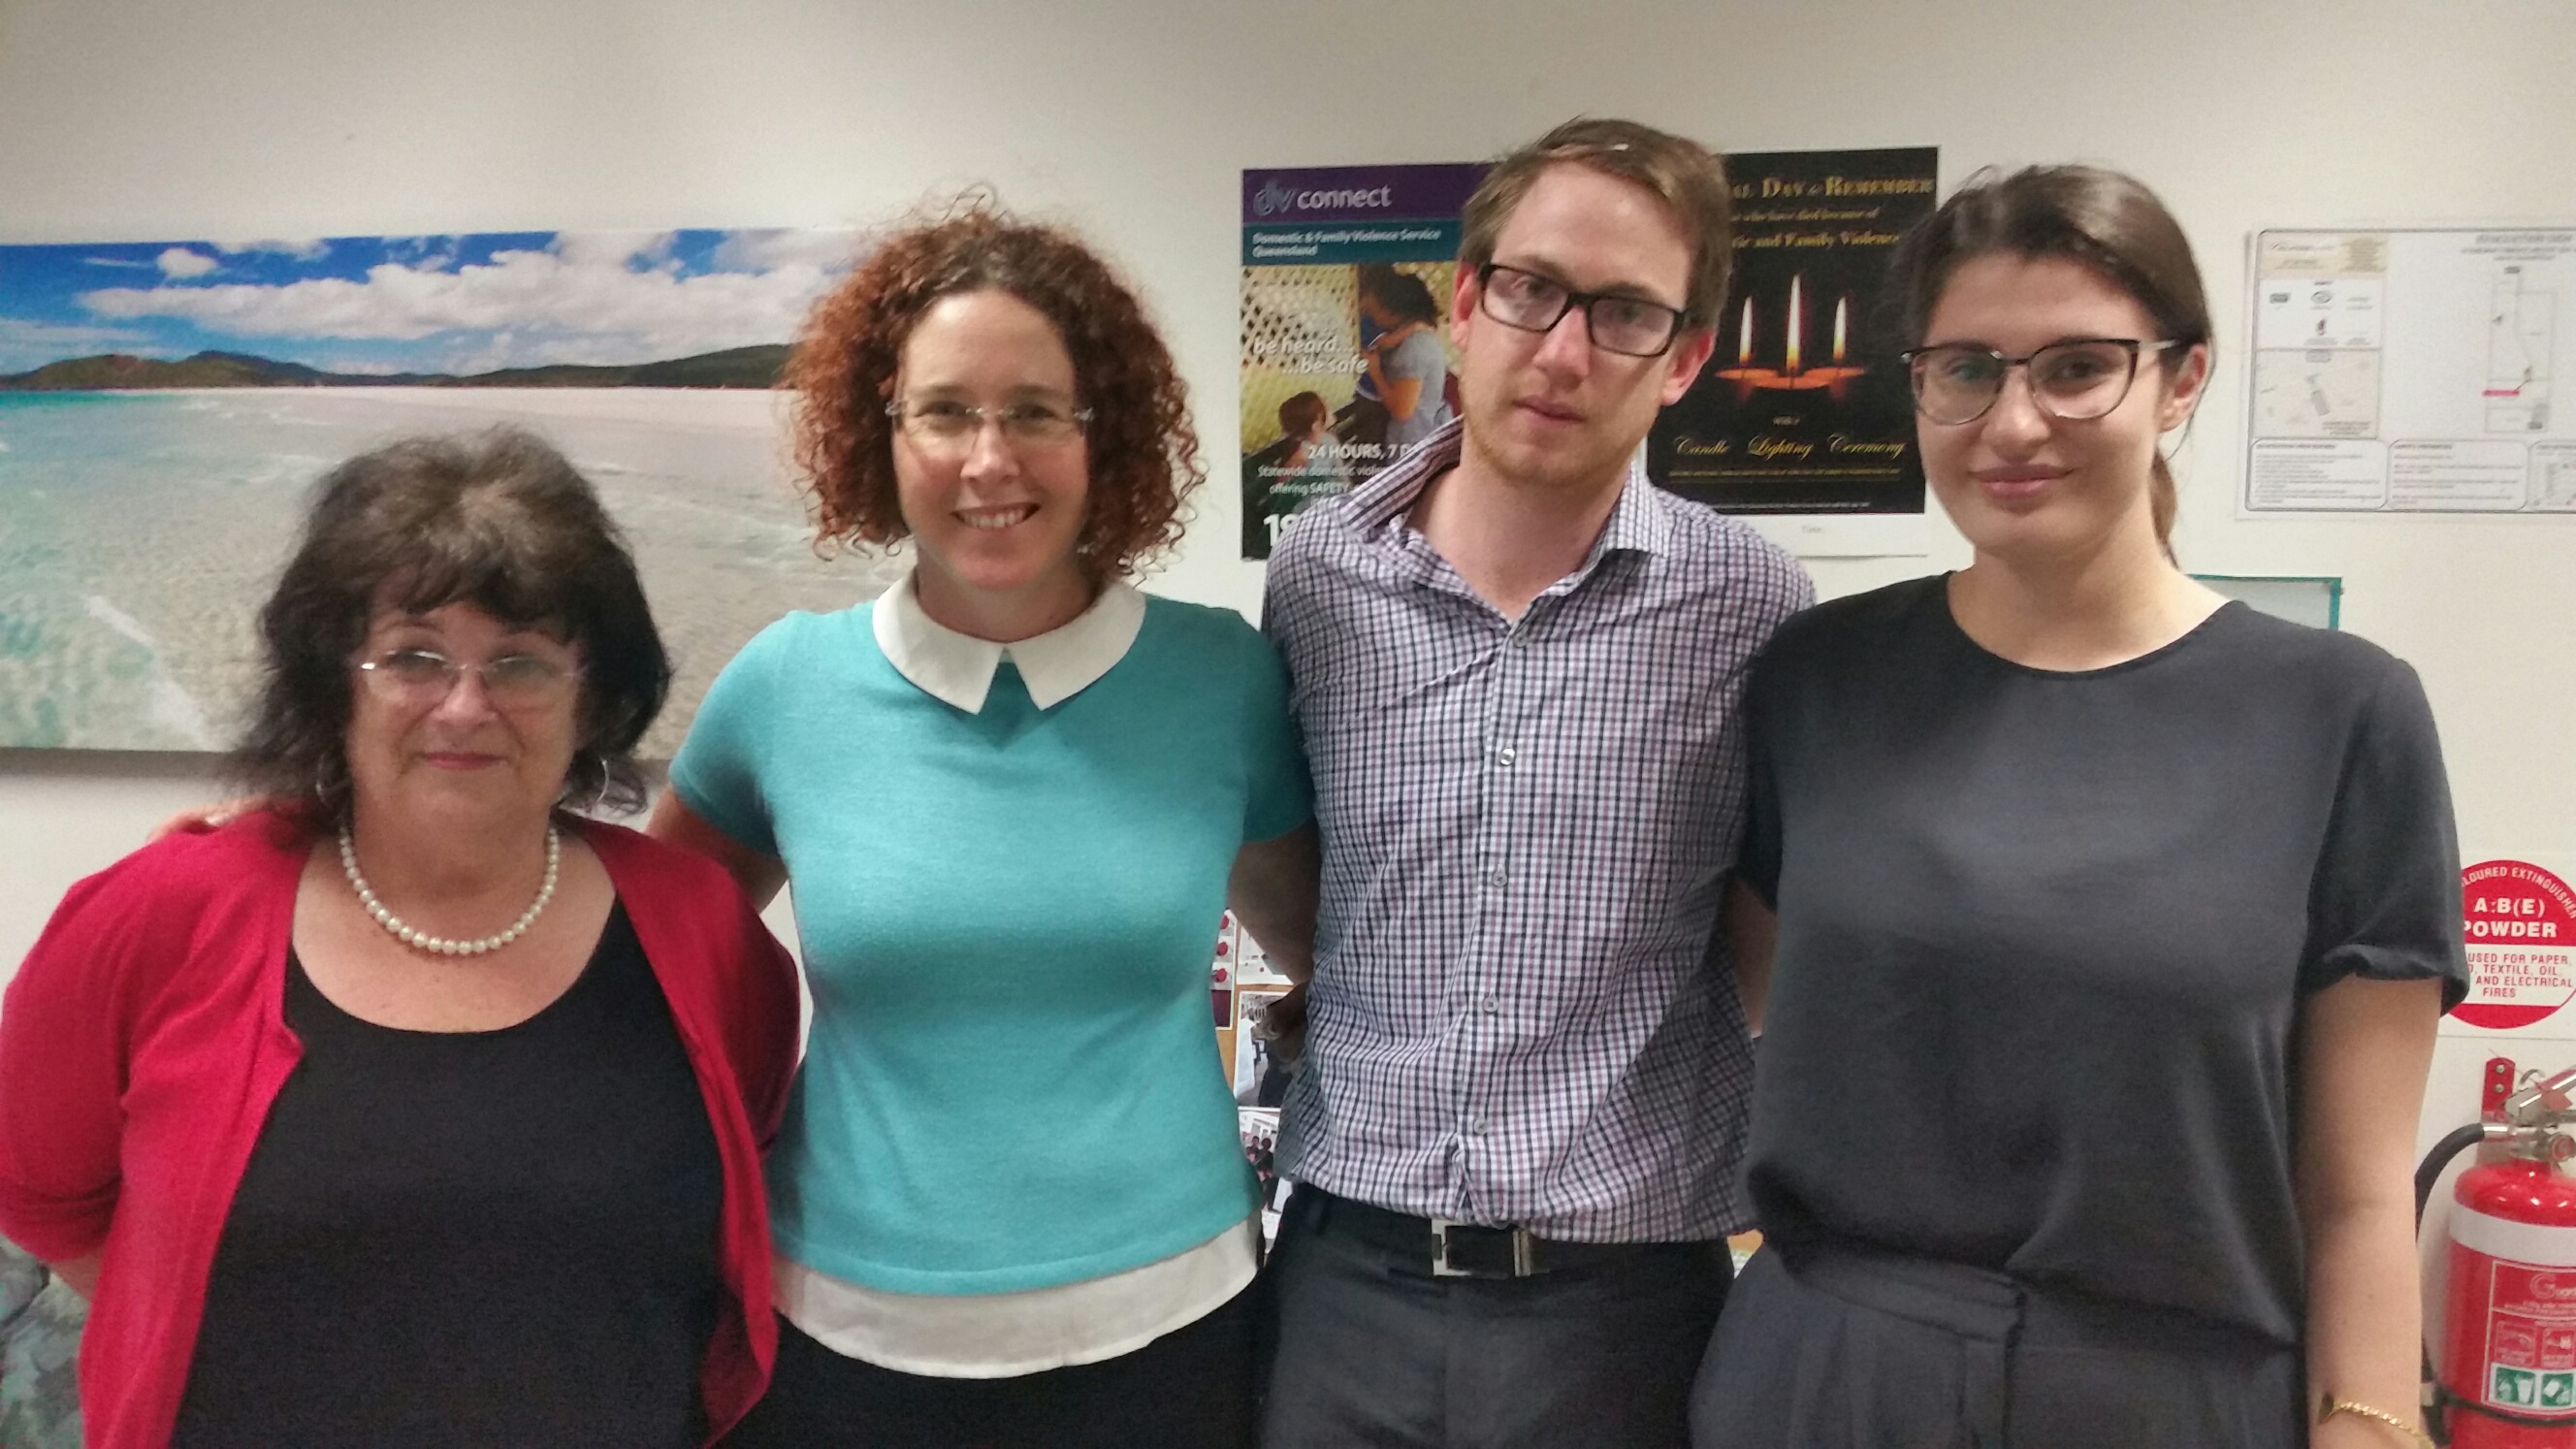 Dianne Mangan, CEO DV Connect; Elissa Farrow, Acting Chair of the Board, Nicholas Lindsay, Rosemary Deeb